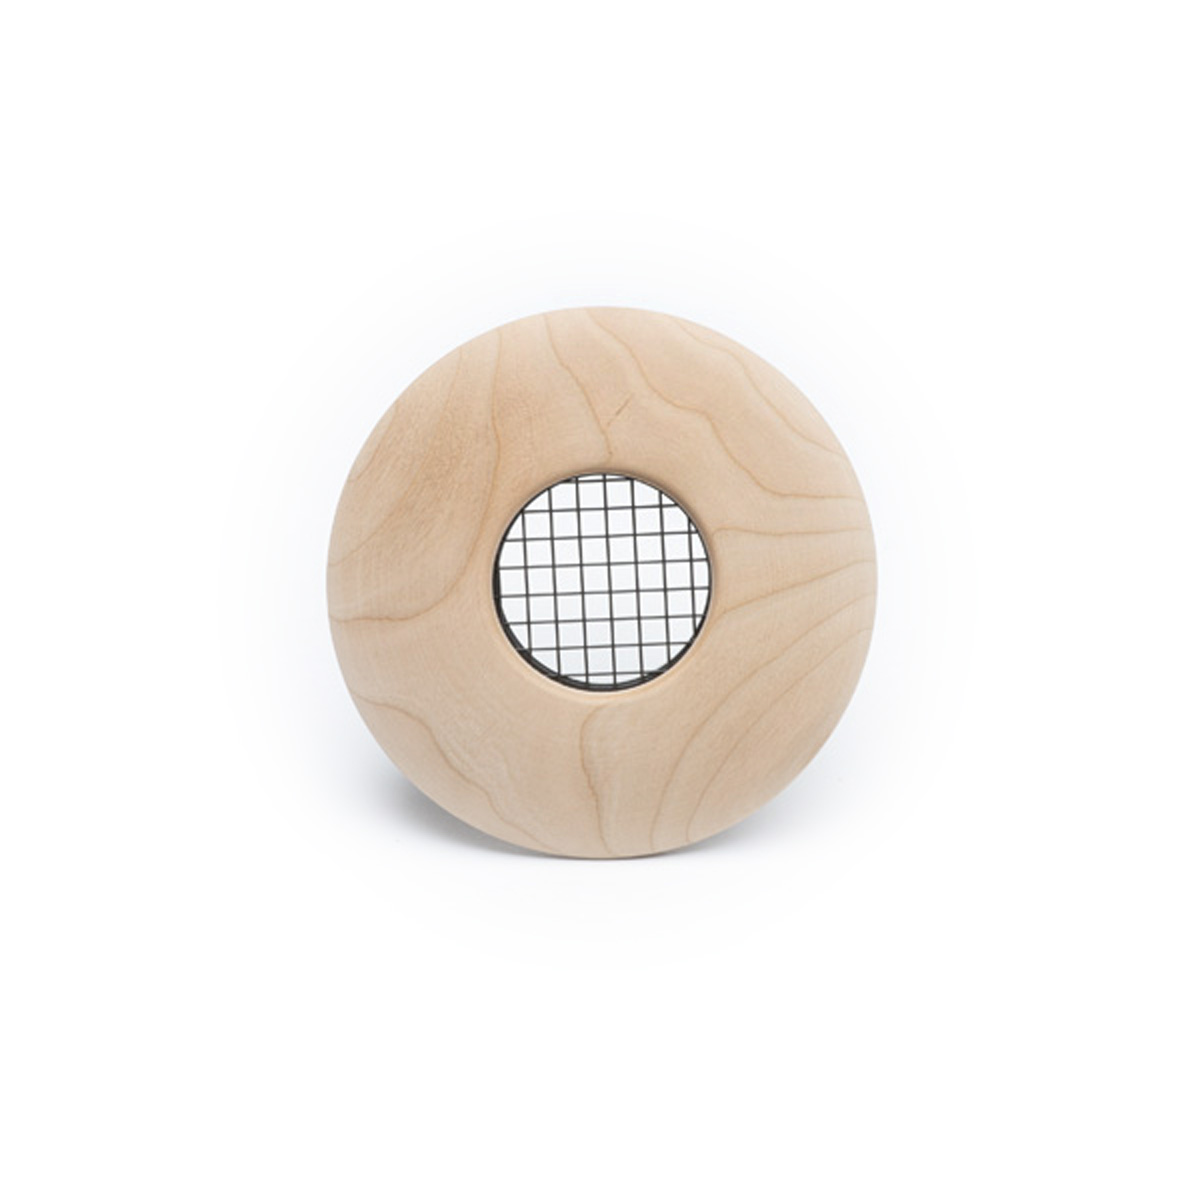 "Round Supply Outlet, 2"", Cherry wood, TFS, 1/bx"